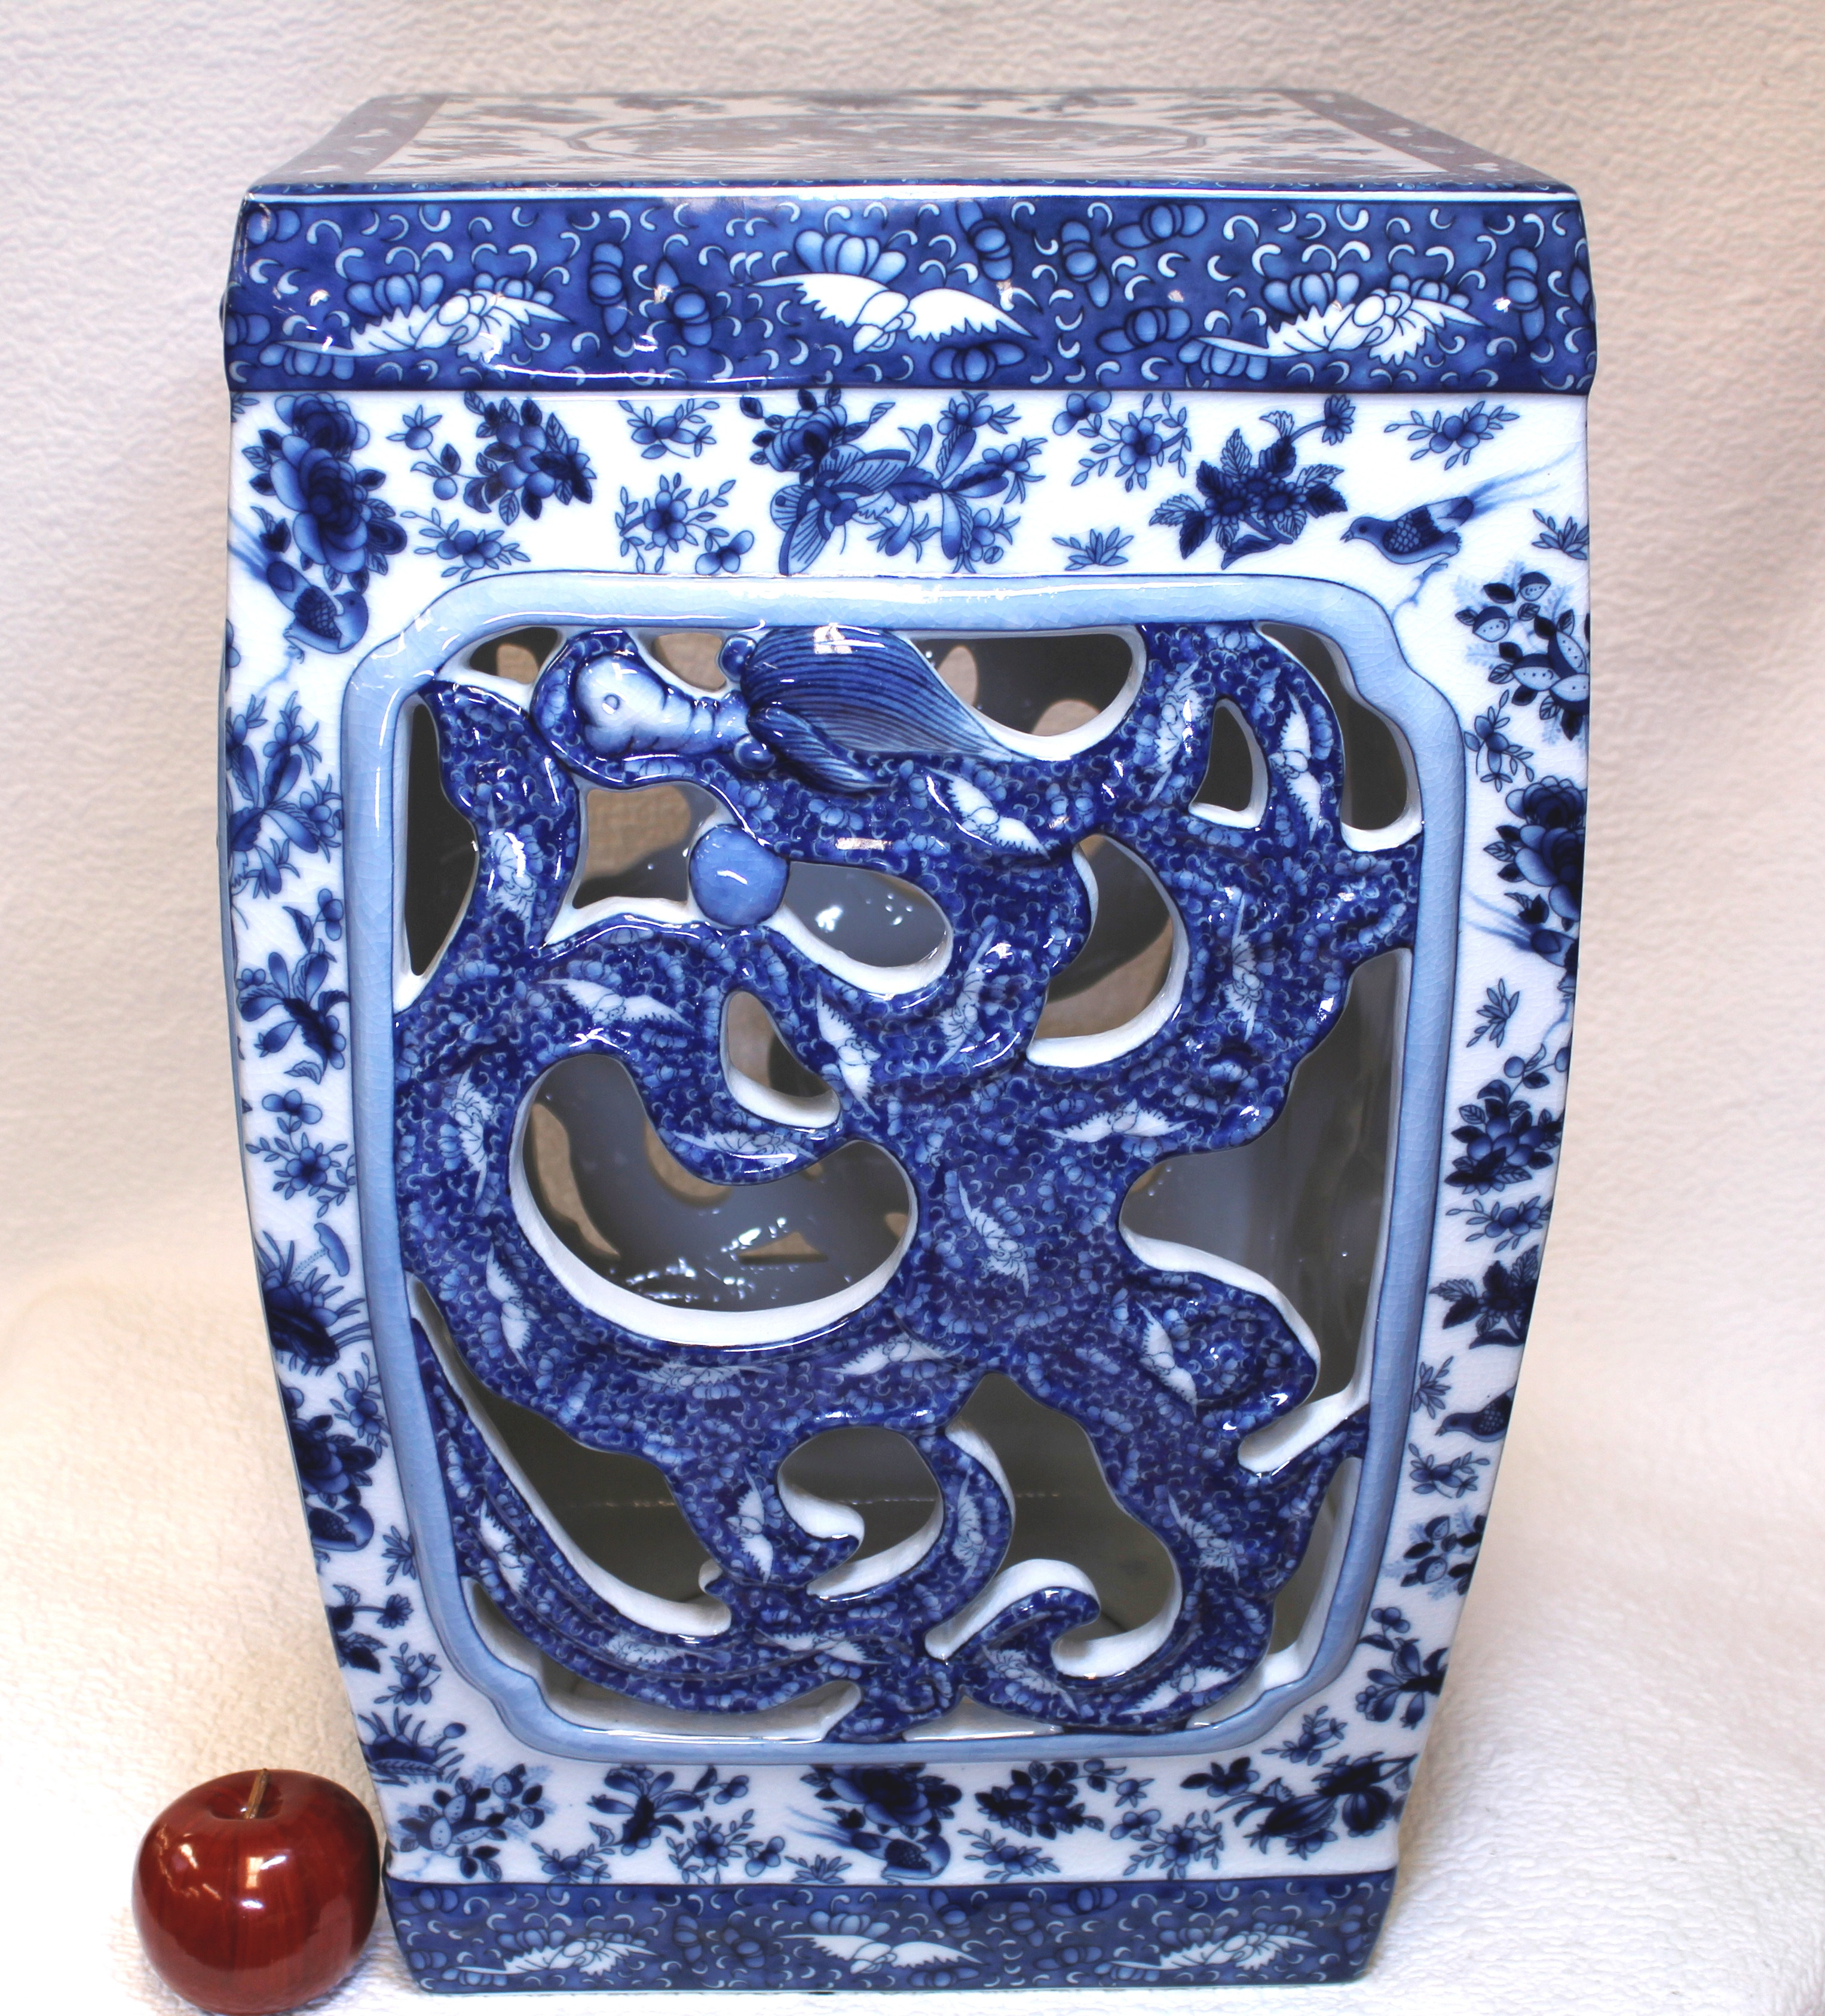 blue and white porcelain vases for sale of blue and white dragon porcelain garden seat 22 for a beautiful and unusual chinese porcelain garden seat painted with blue dragon cut outs this bea